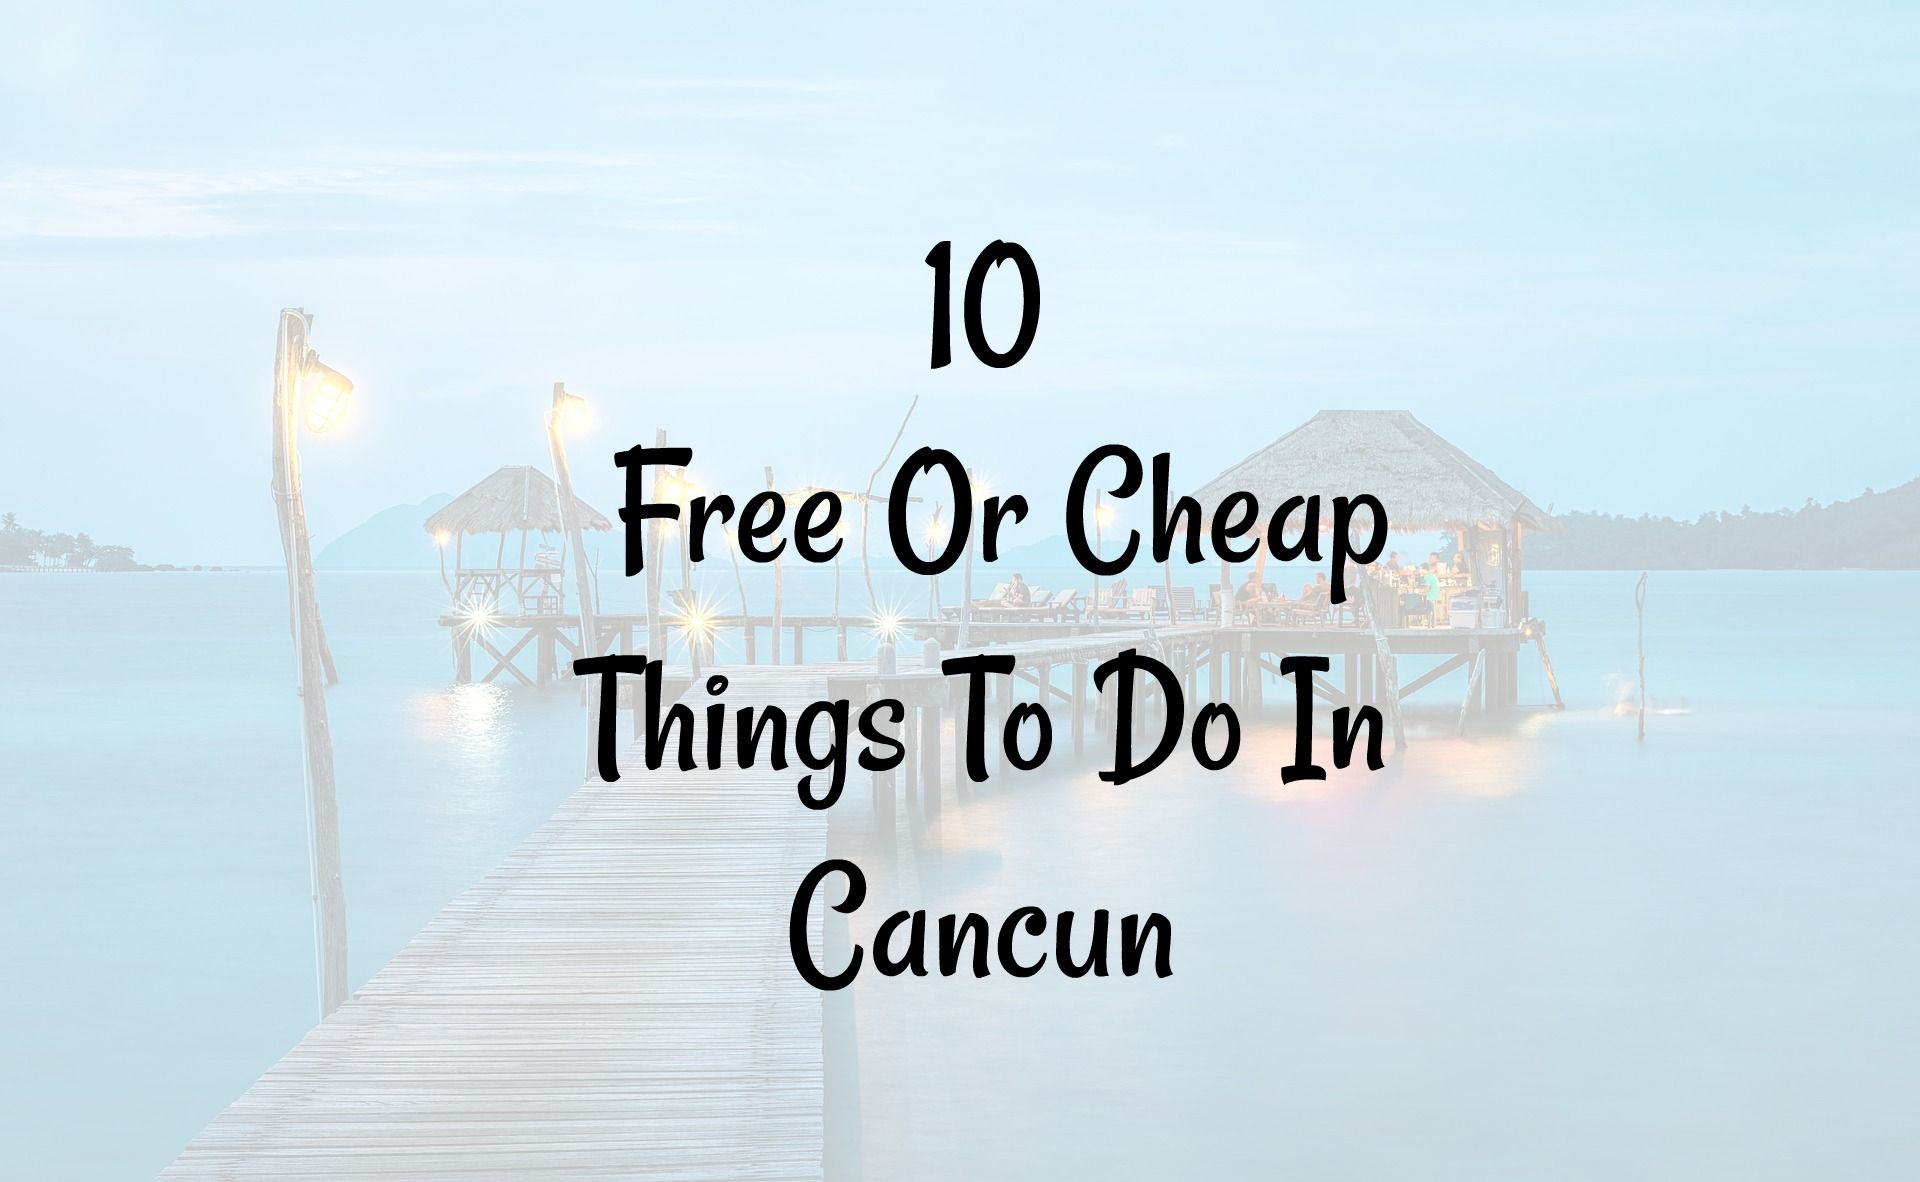 10 Free Or Cheap Things To Do In Cancun | Bedroom | Cancun